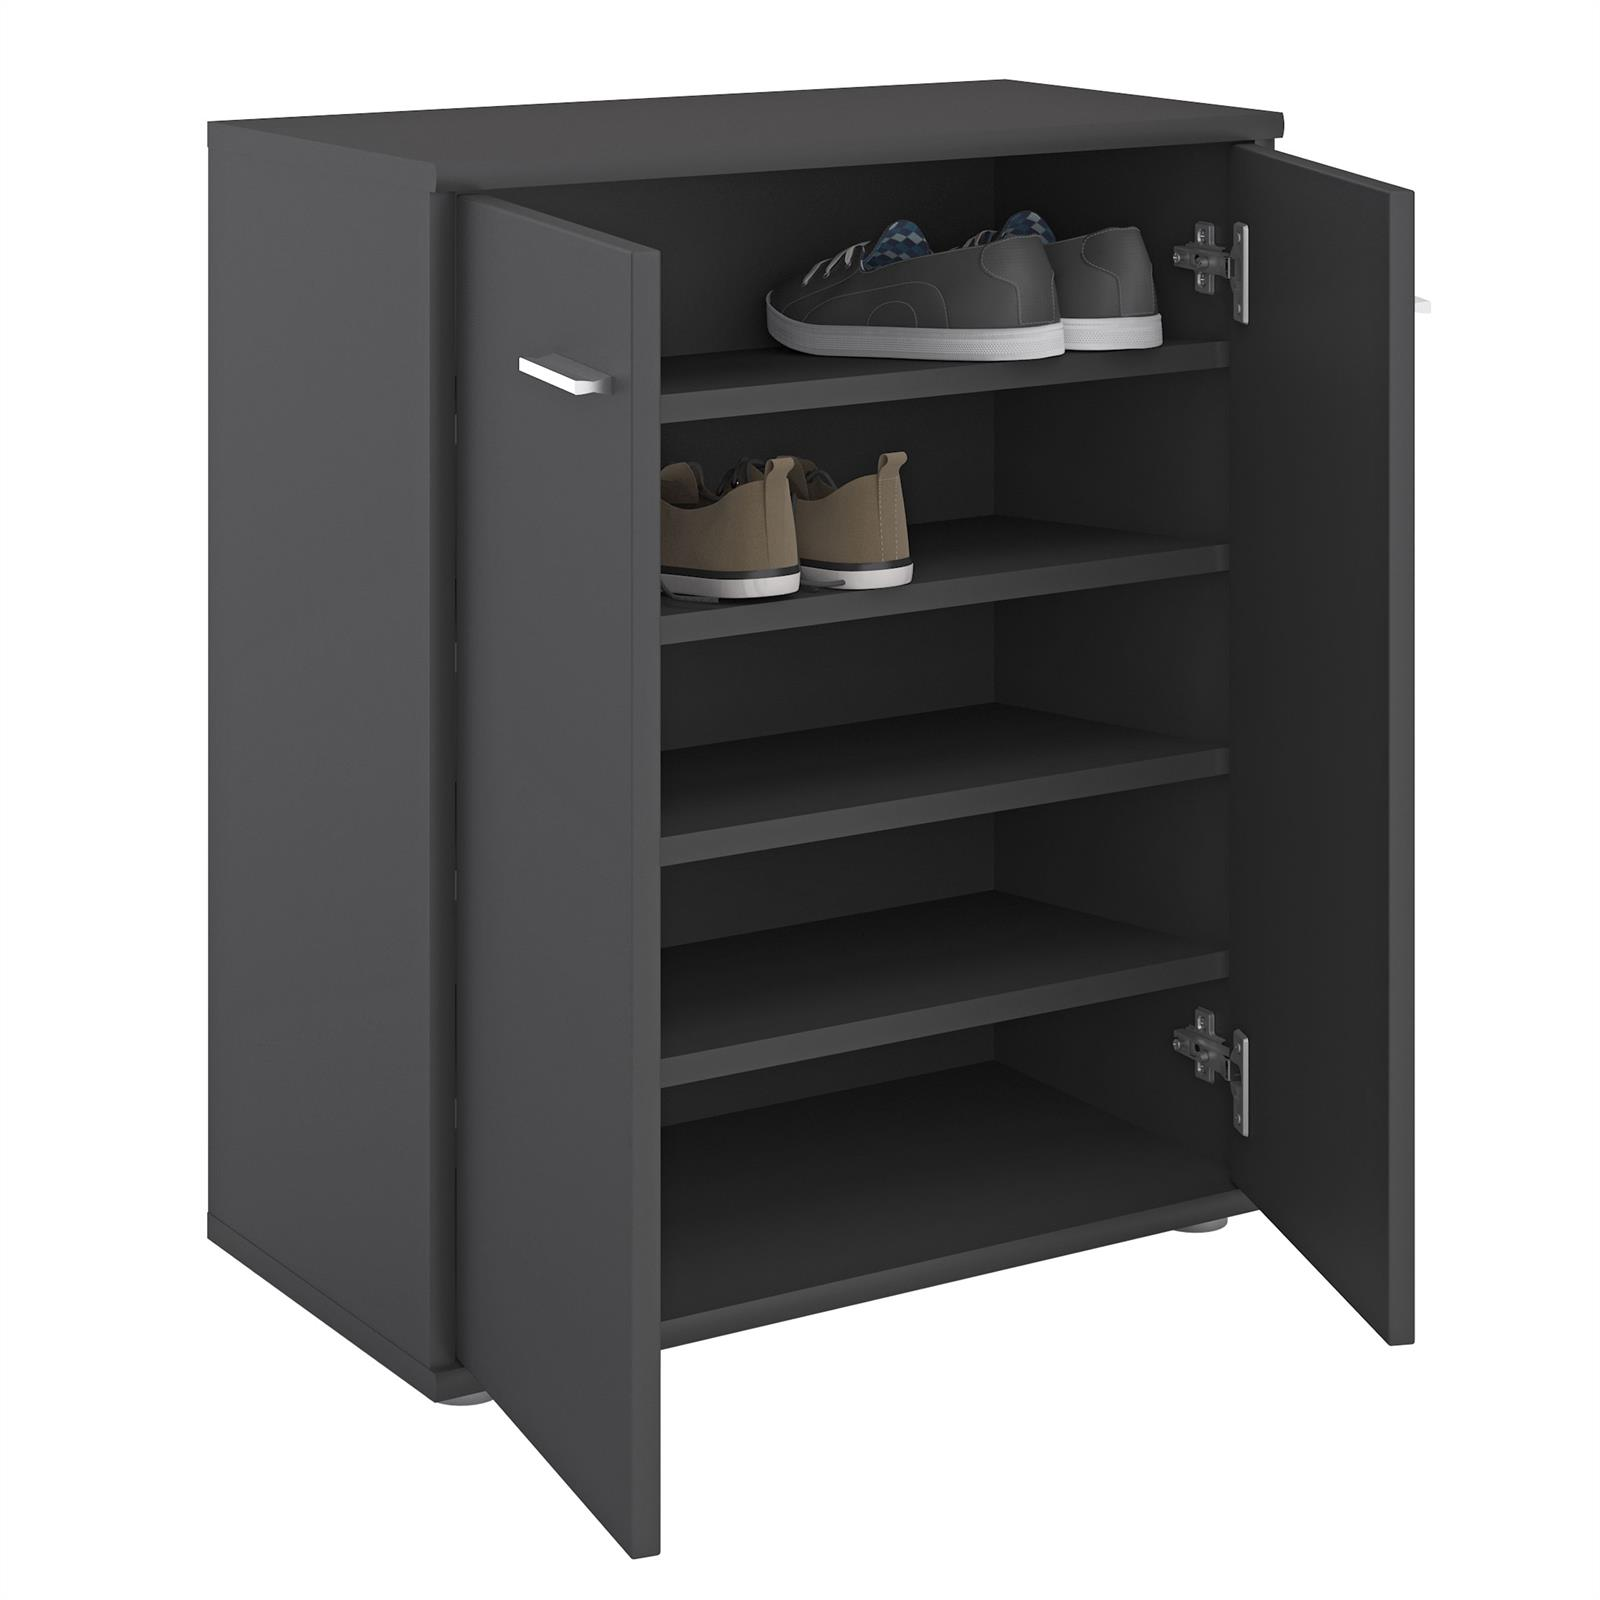 schuhschrank lennis 2 t ren in grau caro m bel. Black Bedroom Furniture Sets. Home Design Ideas